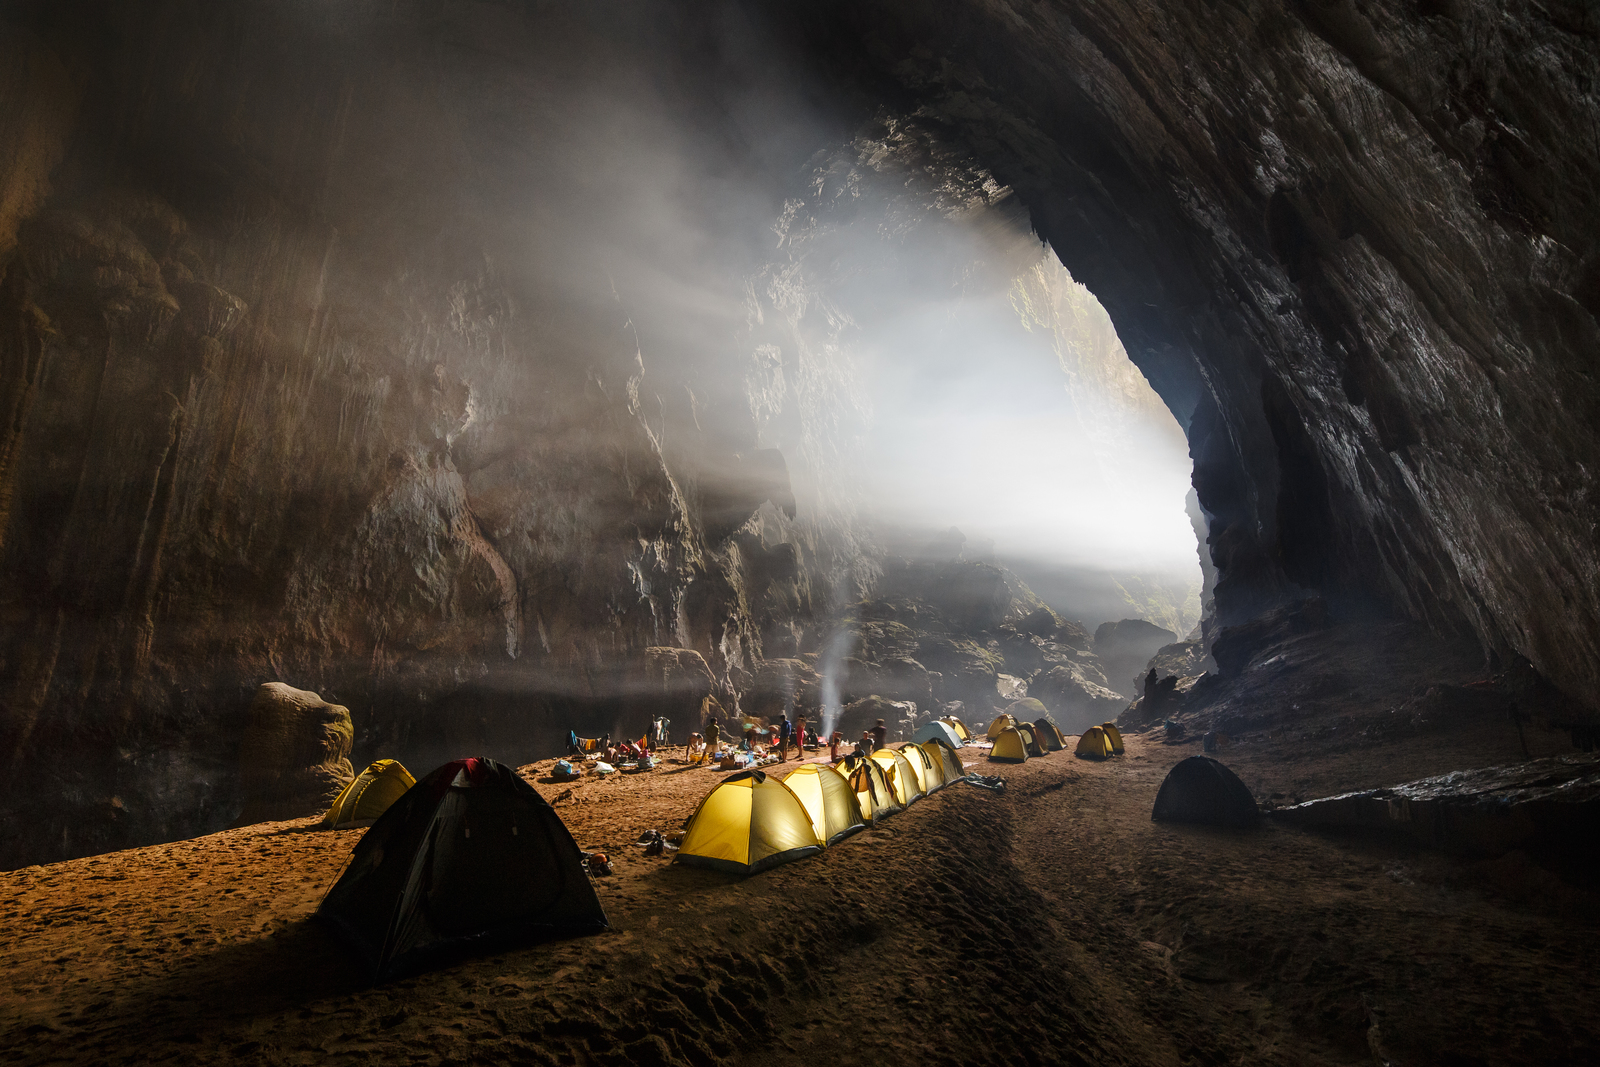 Camping-in-Son-Doong-Cave-Ryan-9594-2585